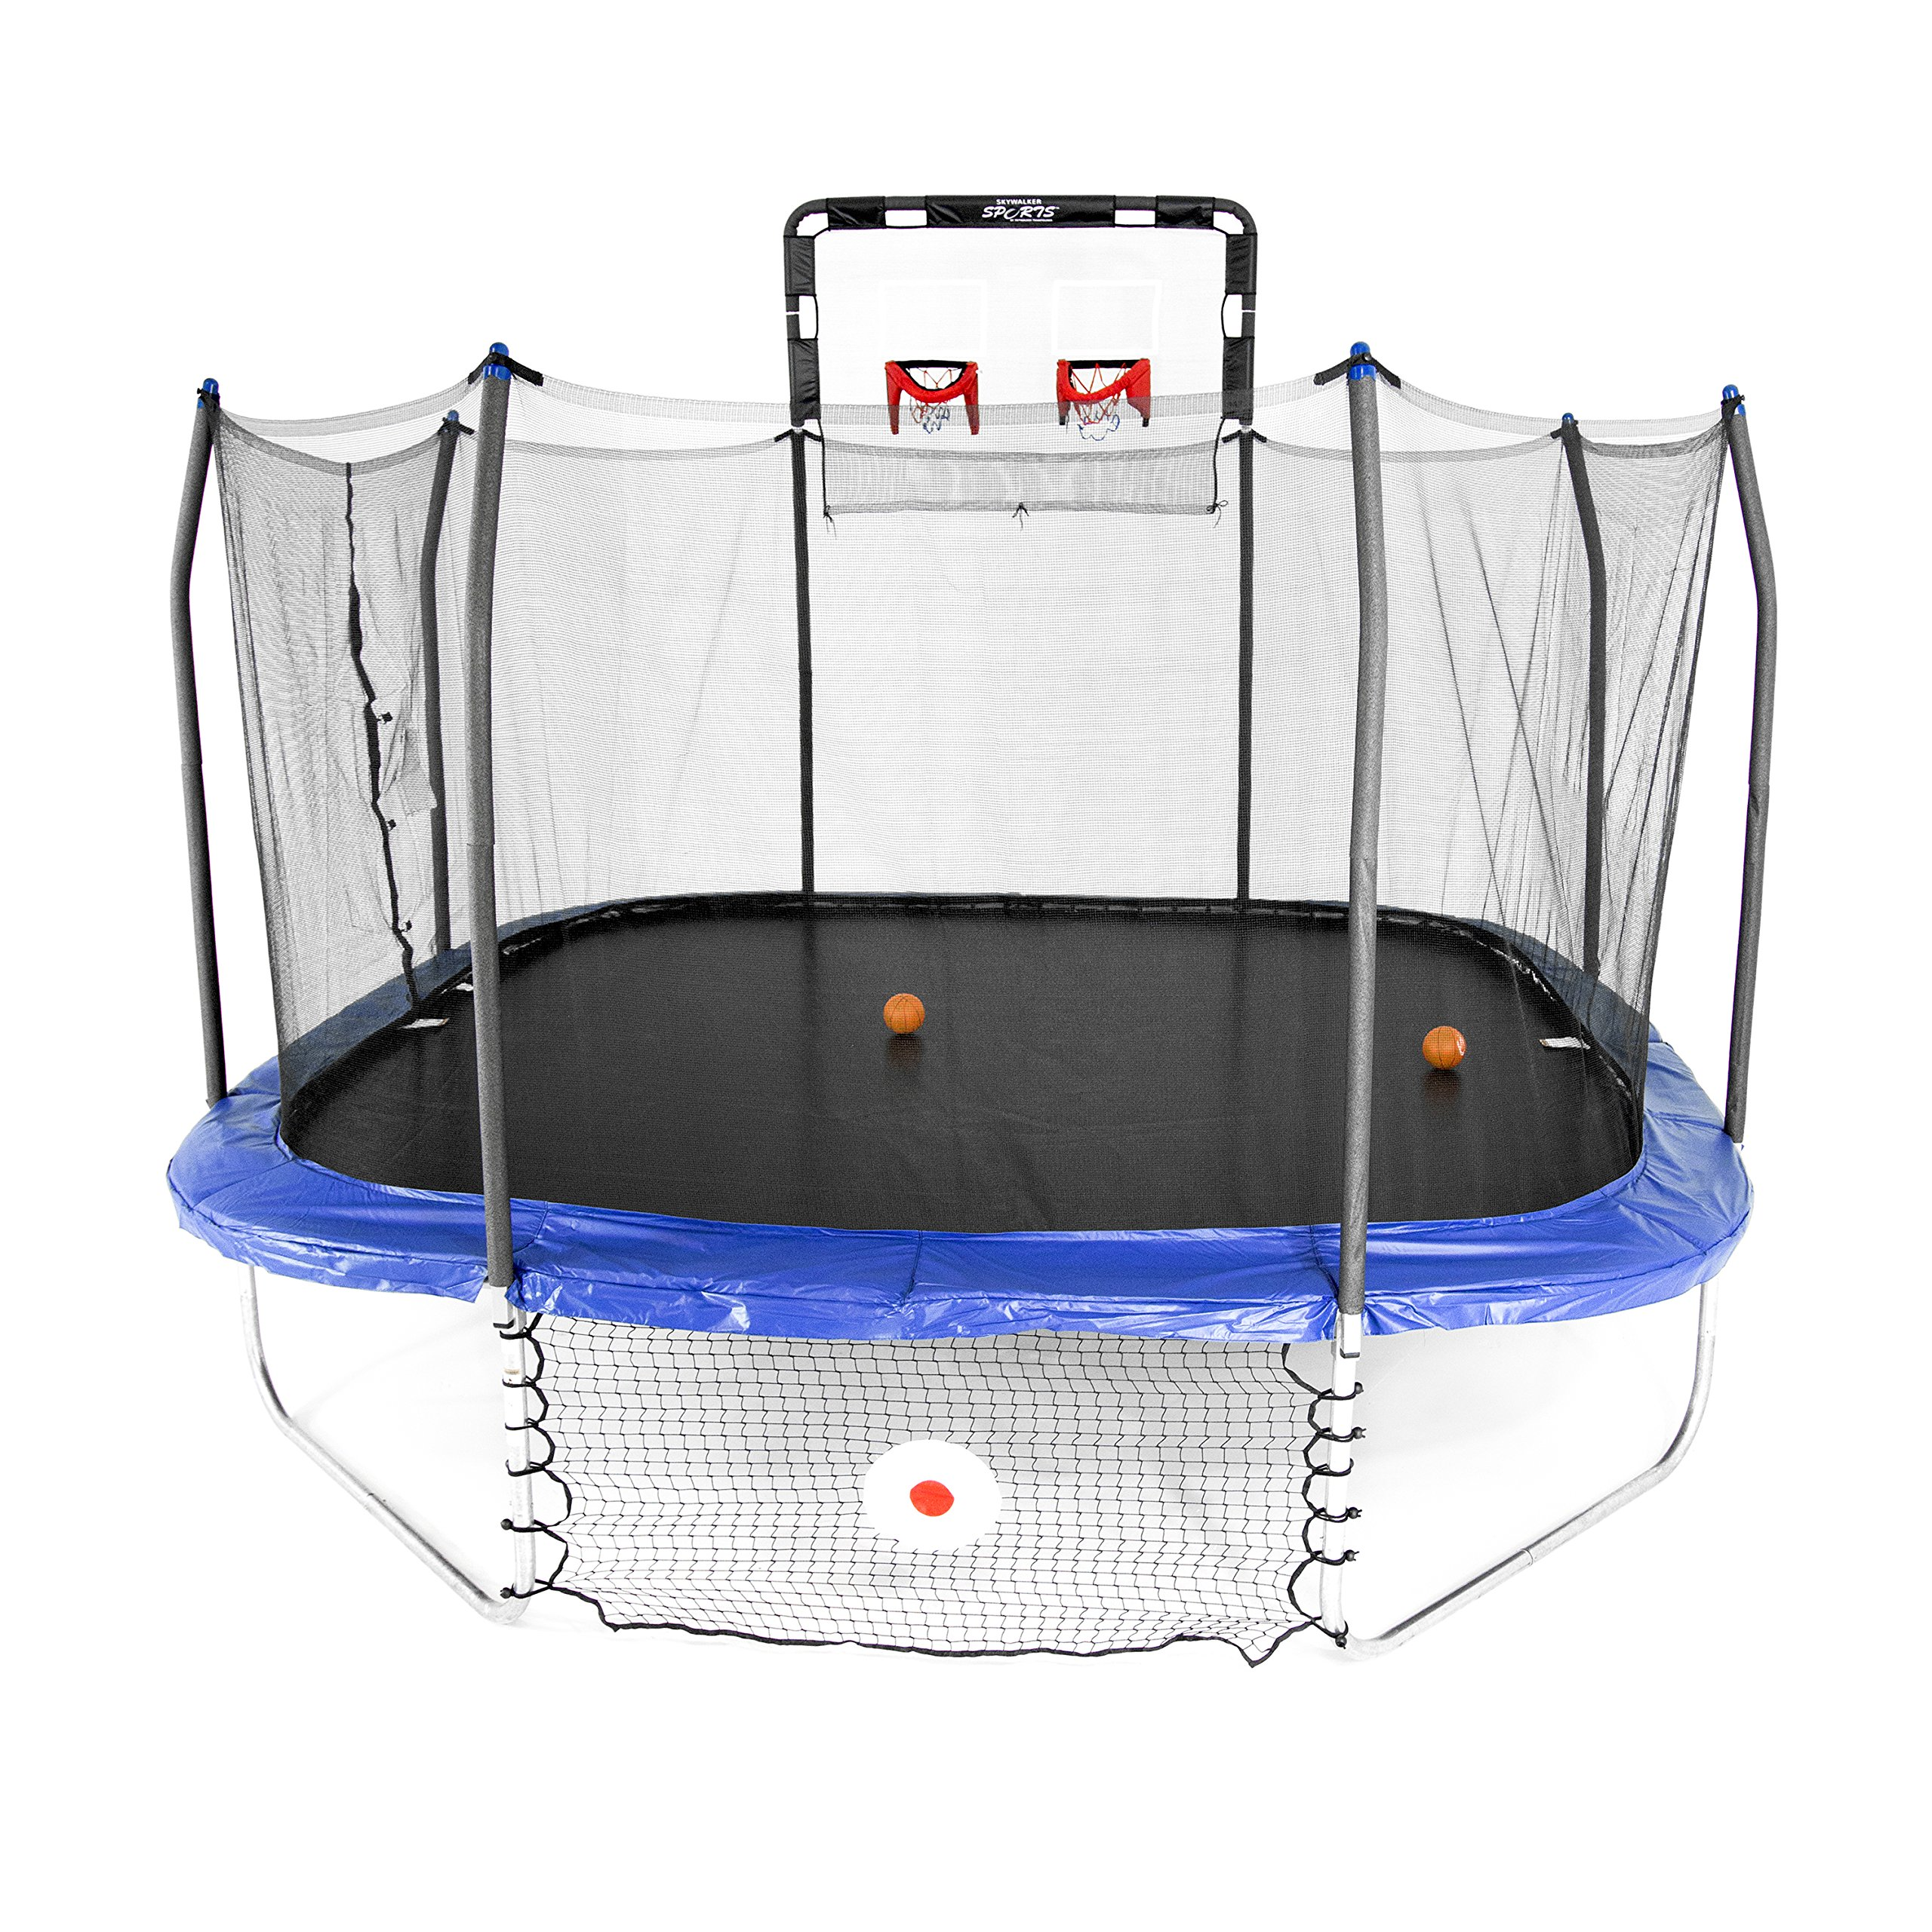 Skywalker Trampolines Jump/Dunk/Kick Trampoline - 14' Square Jump, Dunk & Kick Sports Arena, Blue by Skywalker Trampolines